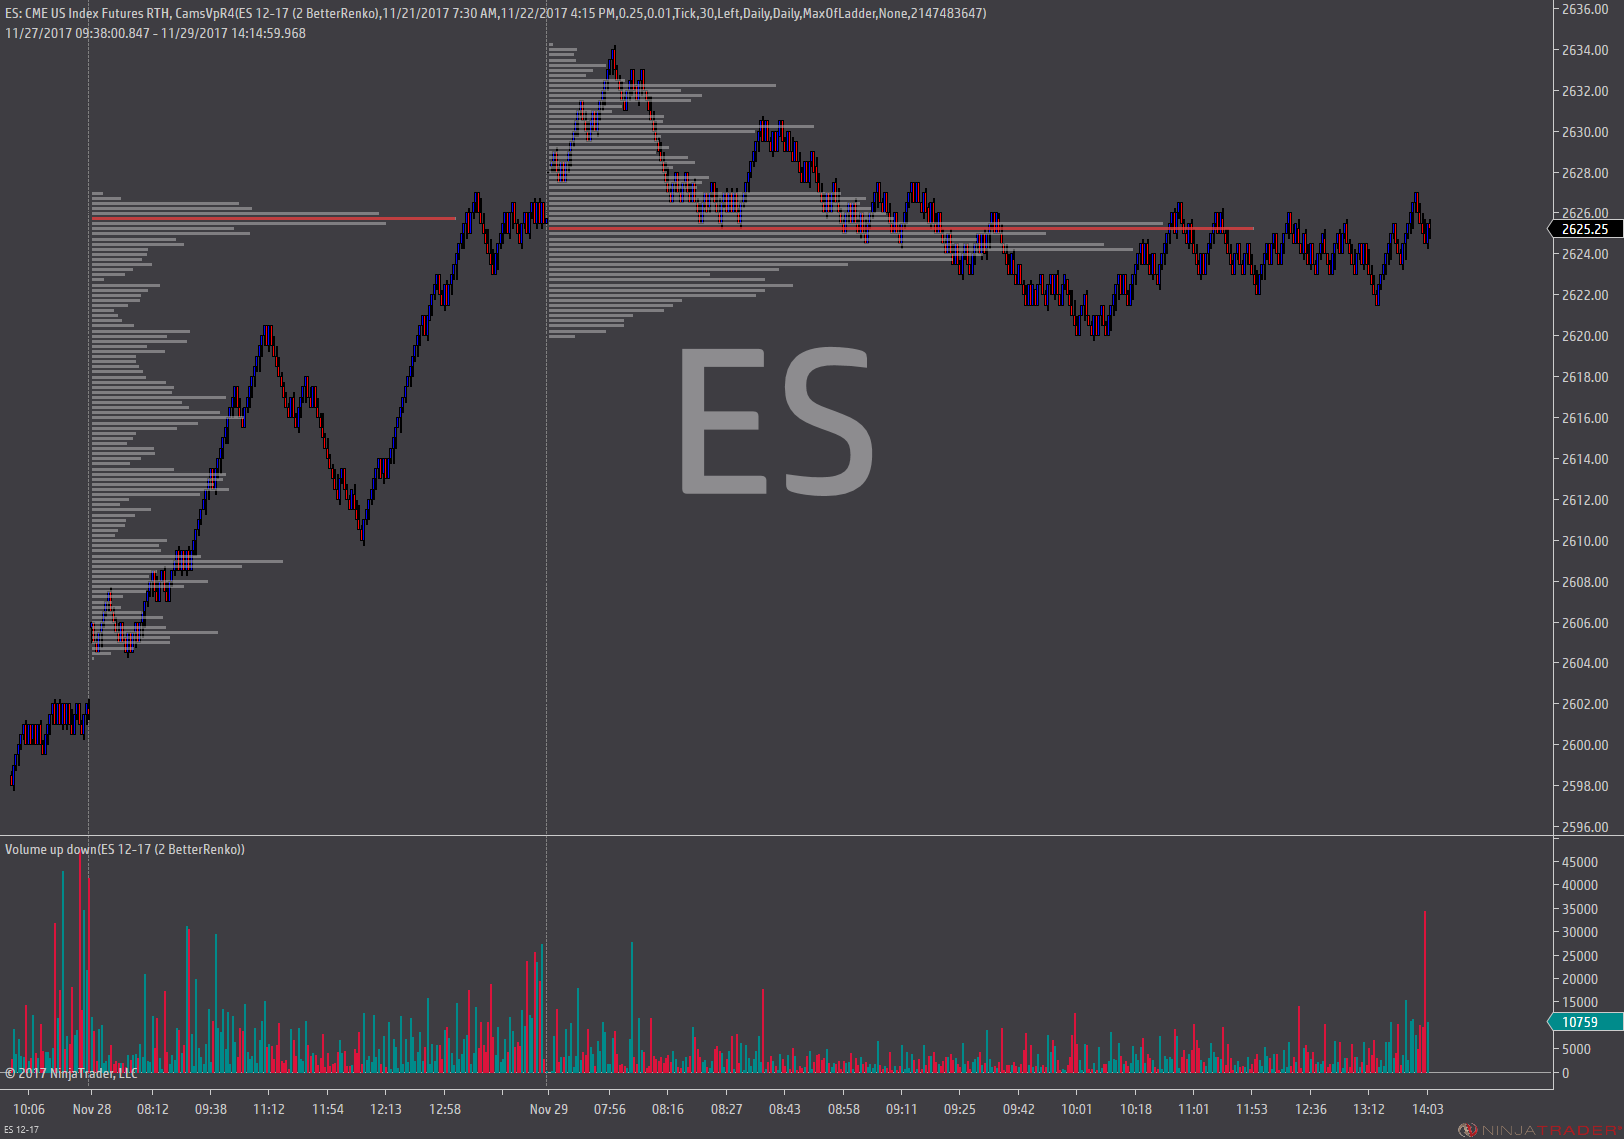 ES 12-17 (2 BetterRenko(17)) 2017_11_29.png